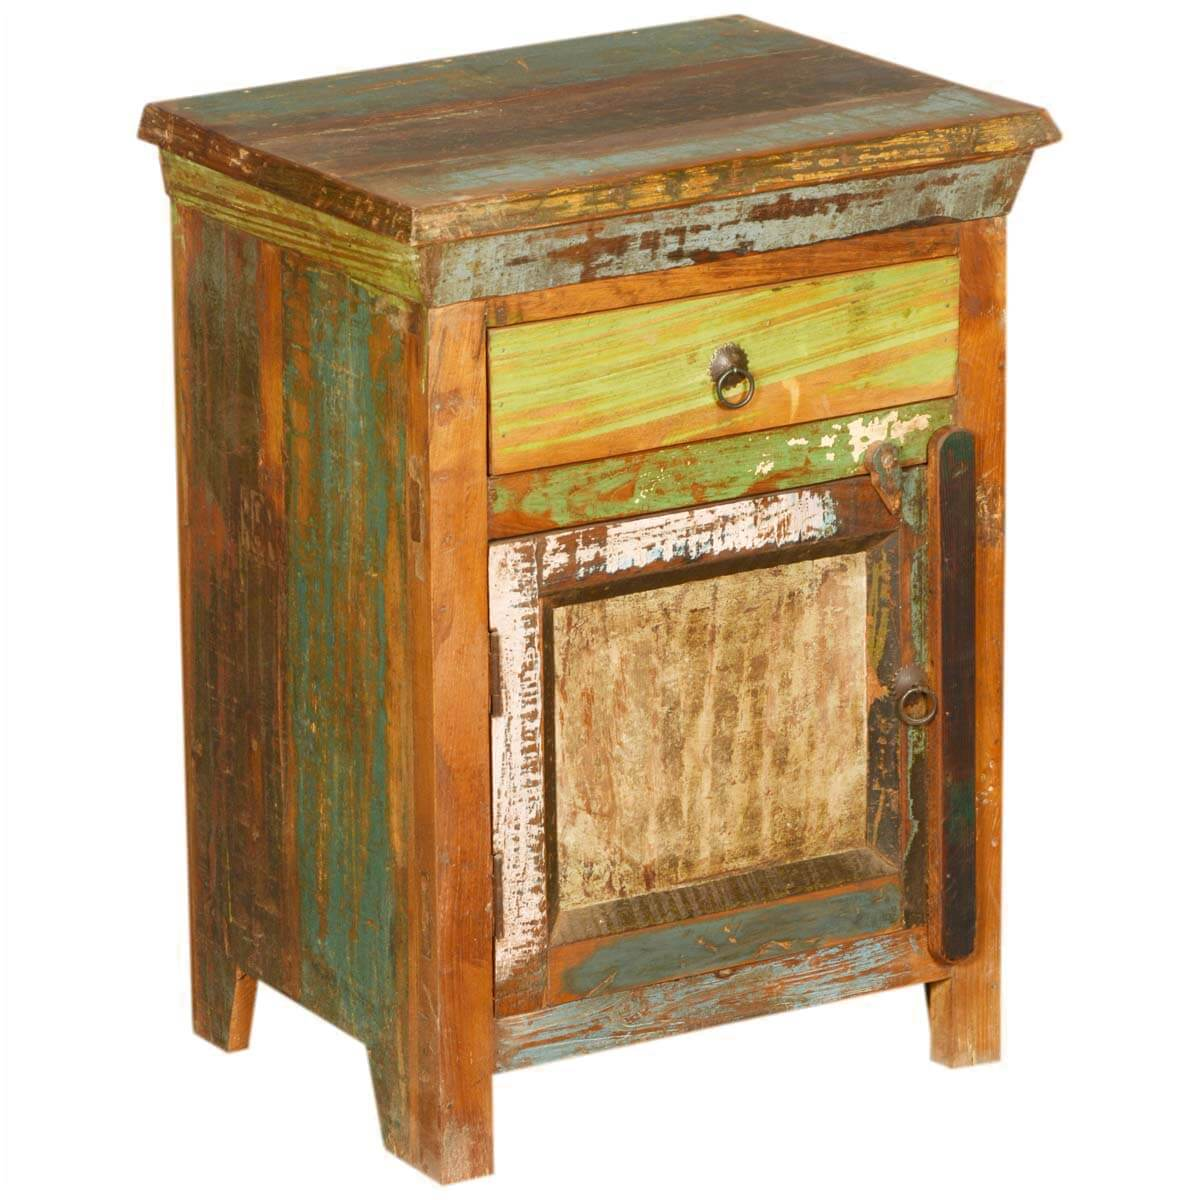 New memories rustic reclaimed wood night stand end table for Rustic wood nightstand